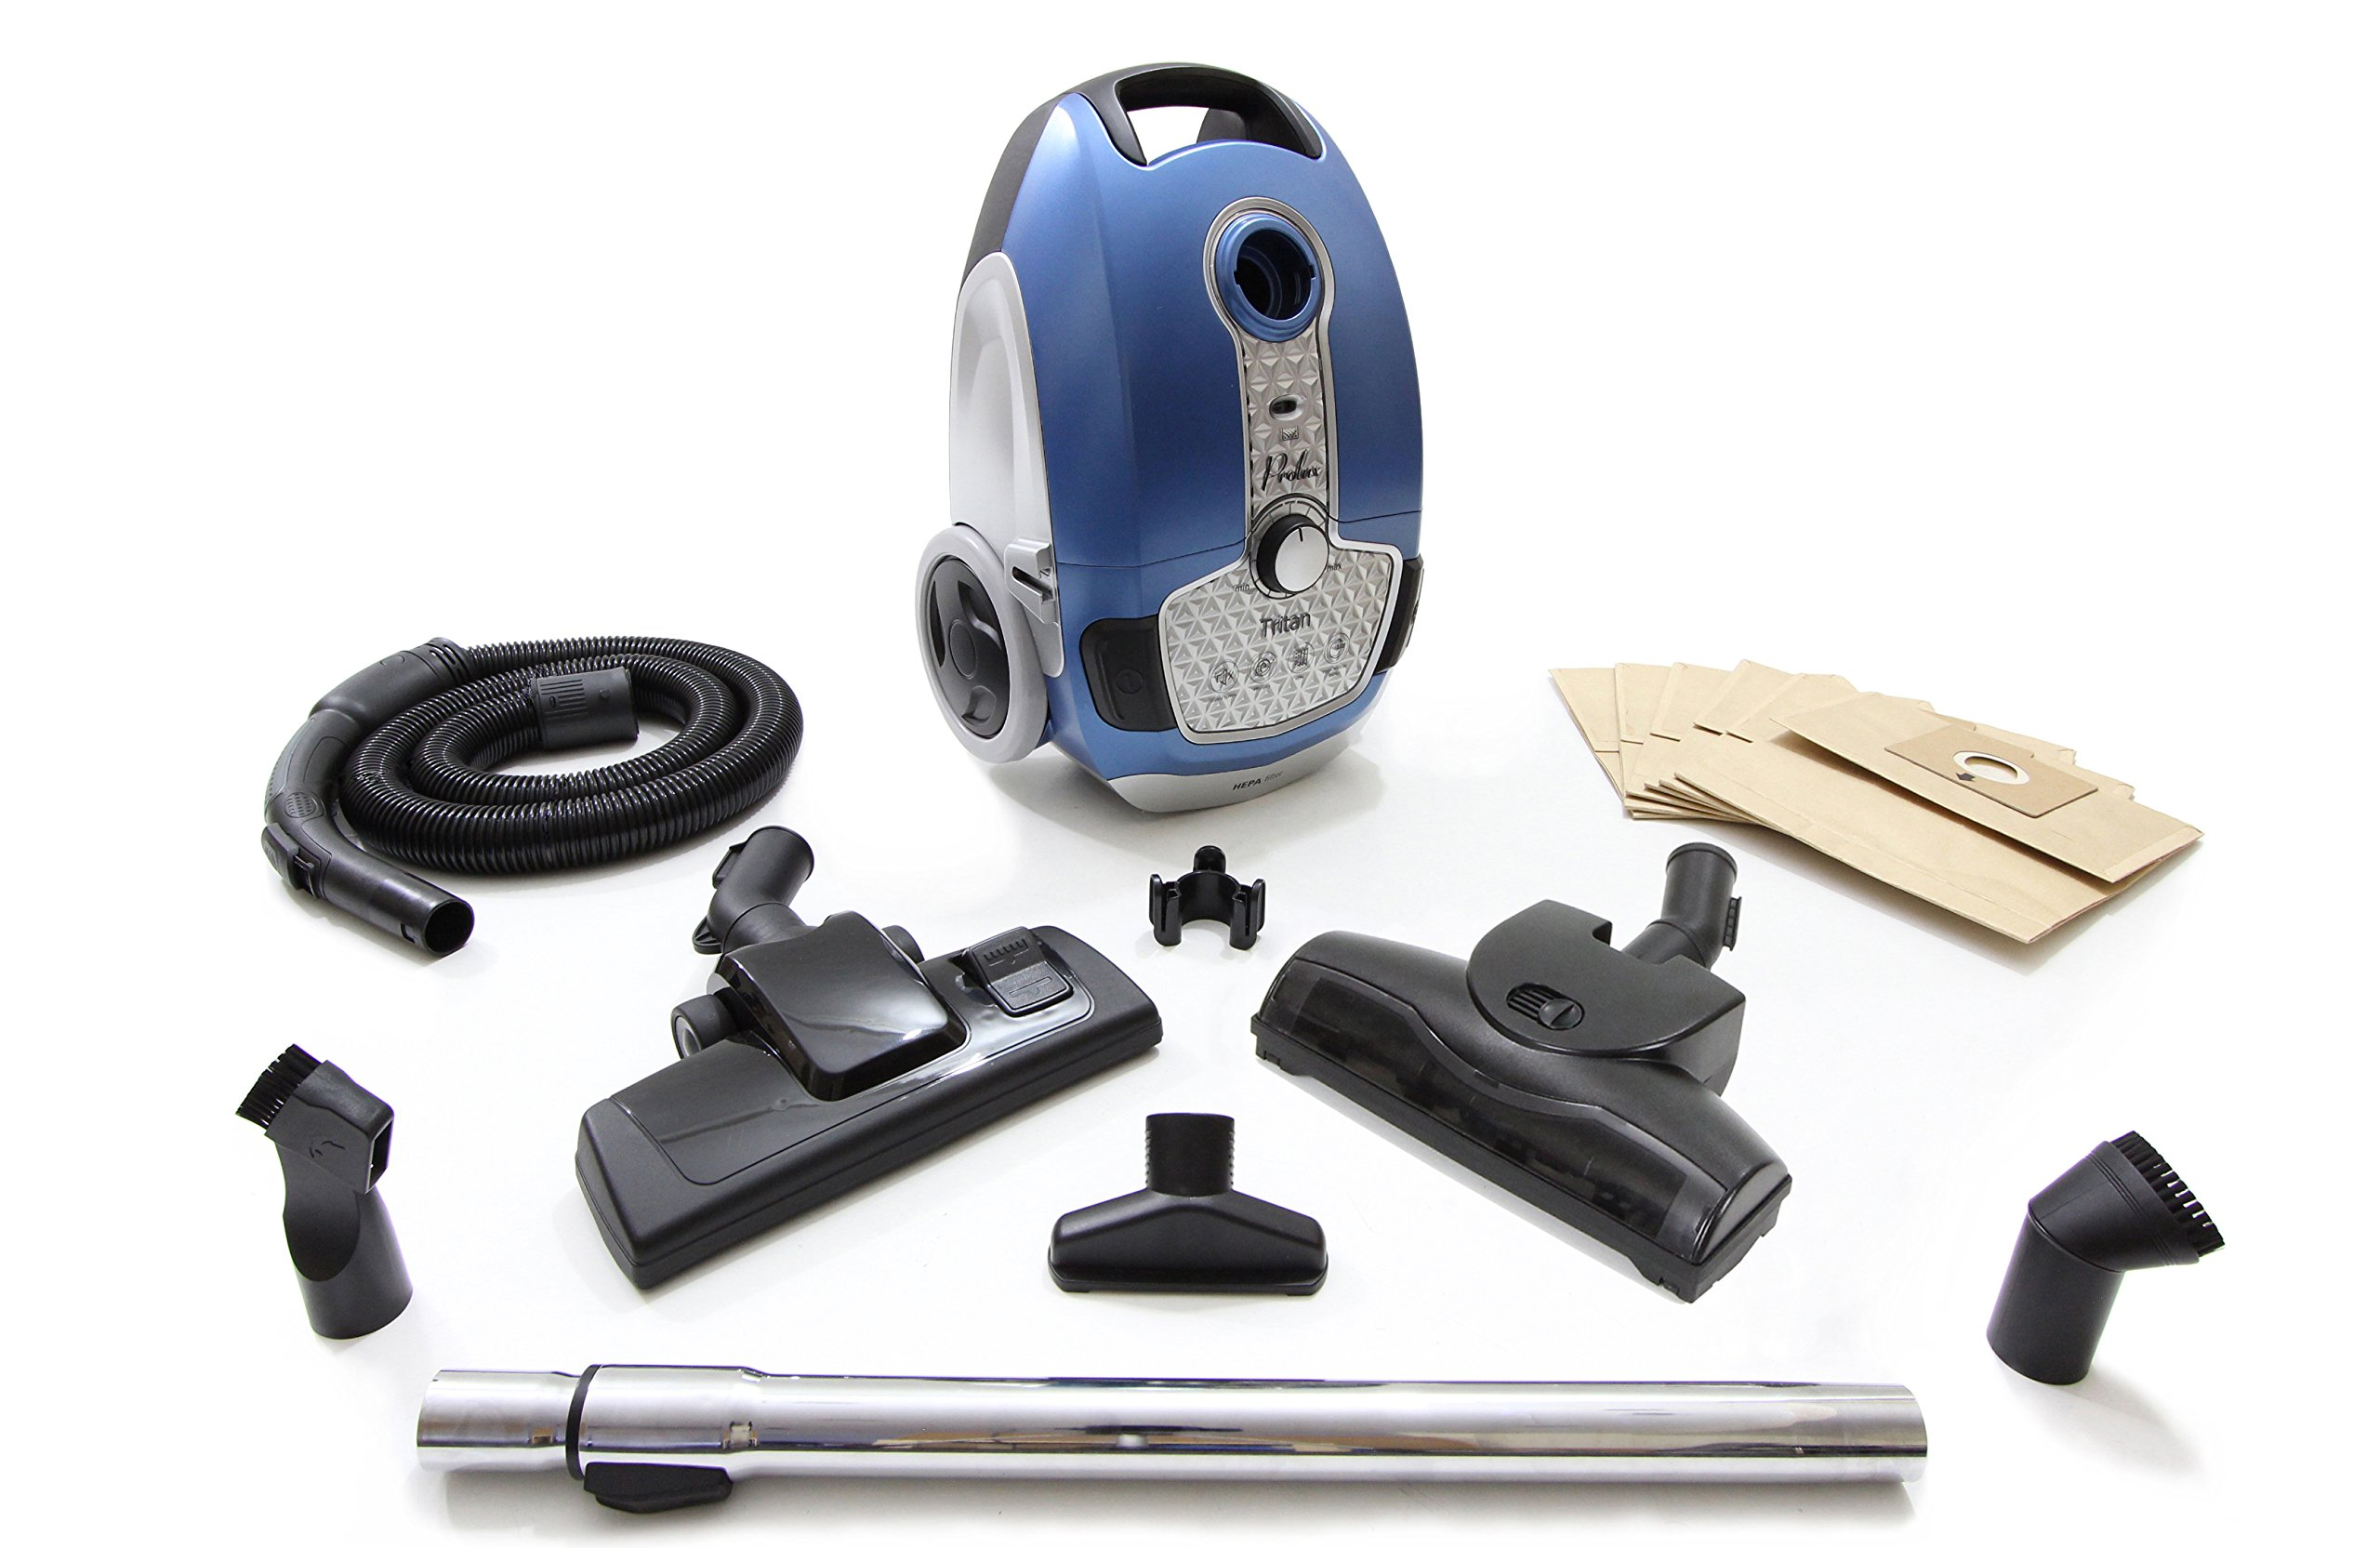 Prolux Tritan Bagged Canister Vacuum with HEPA Filtration for Pet Owners by Prolux